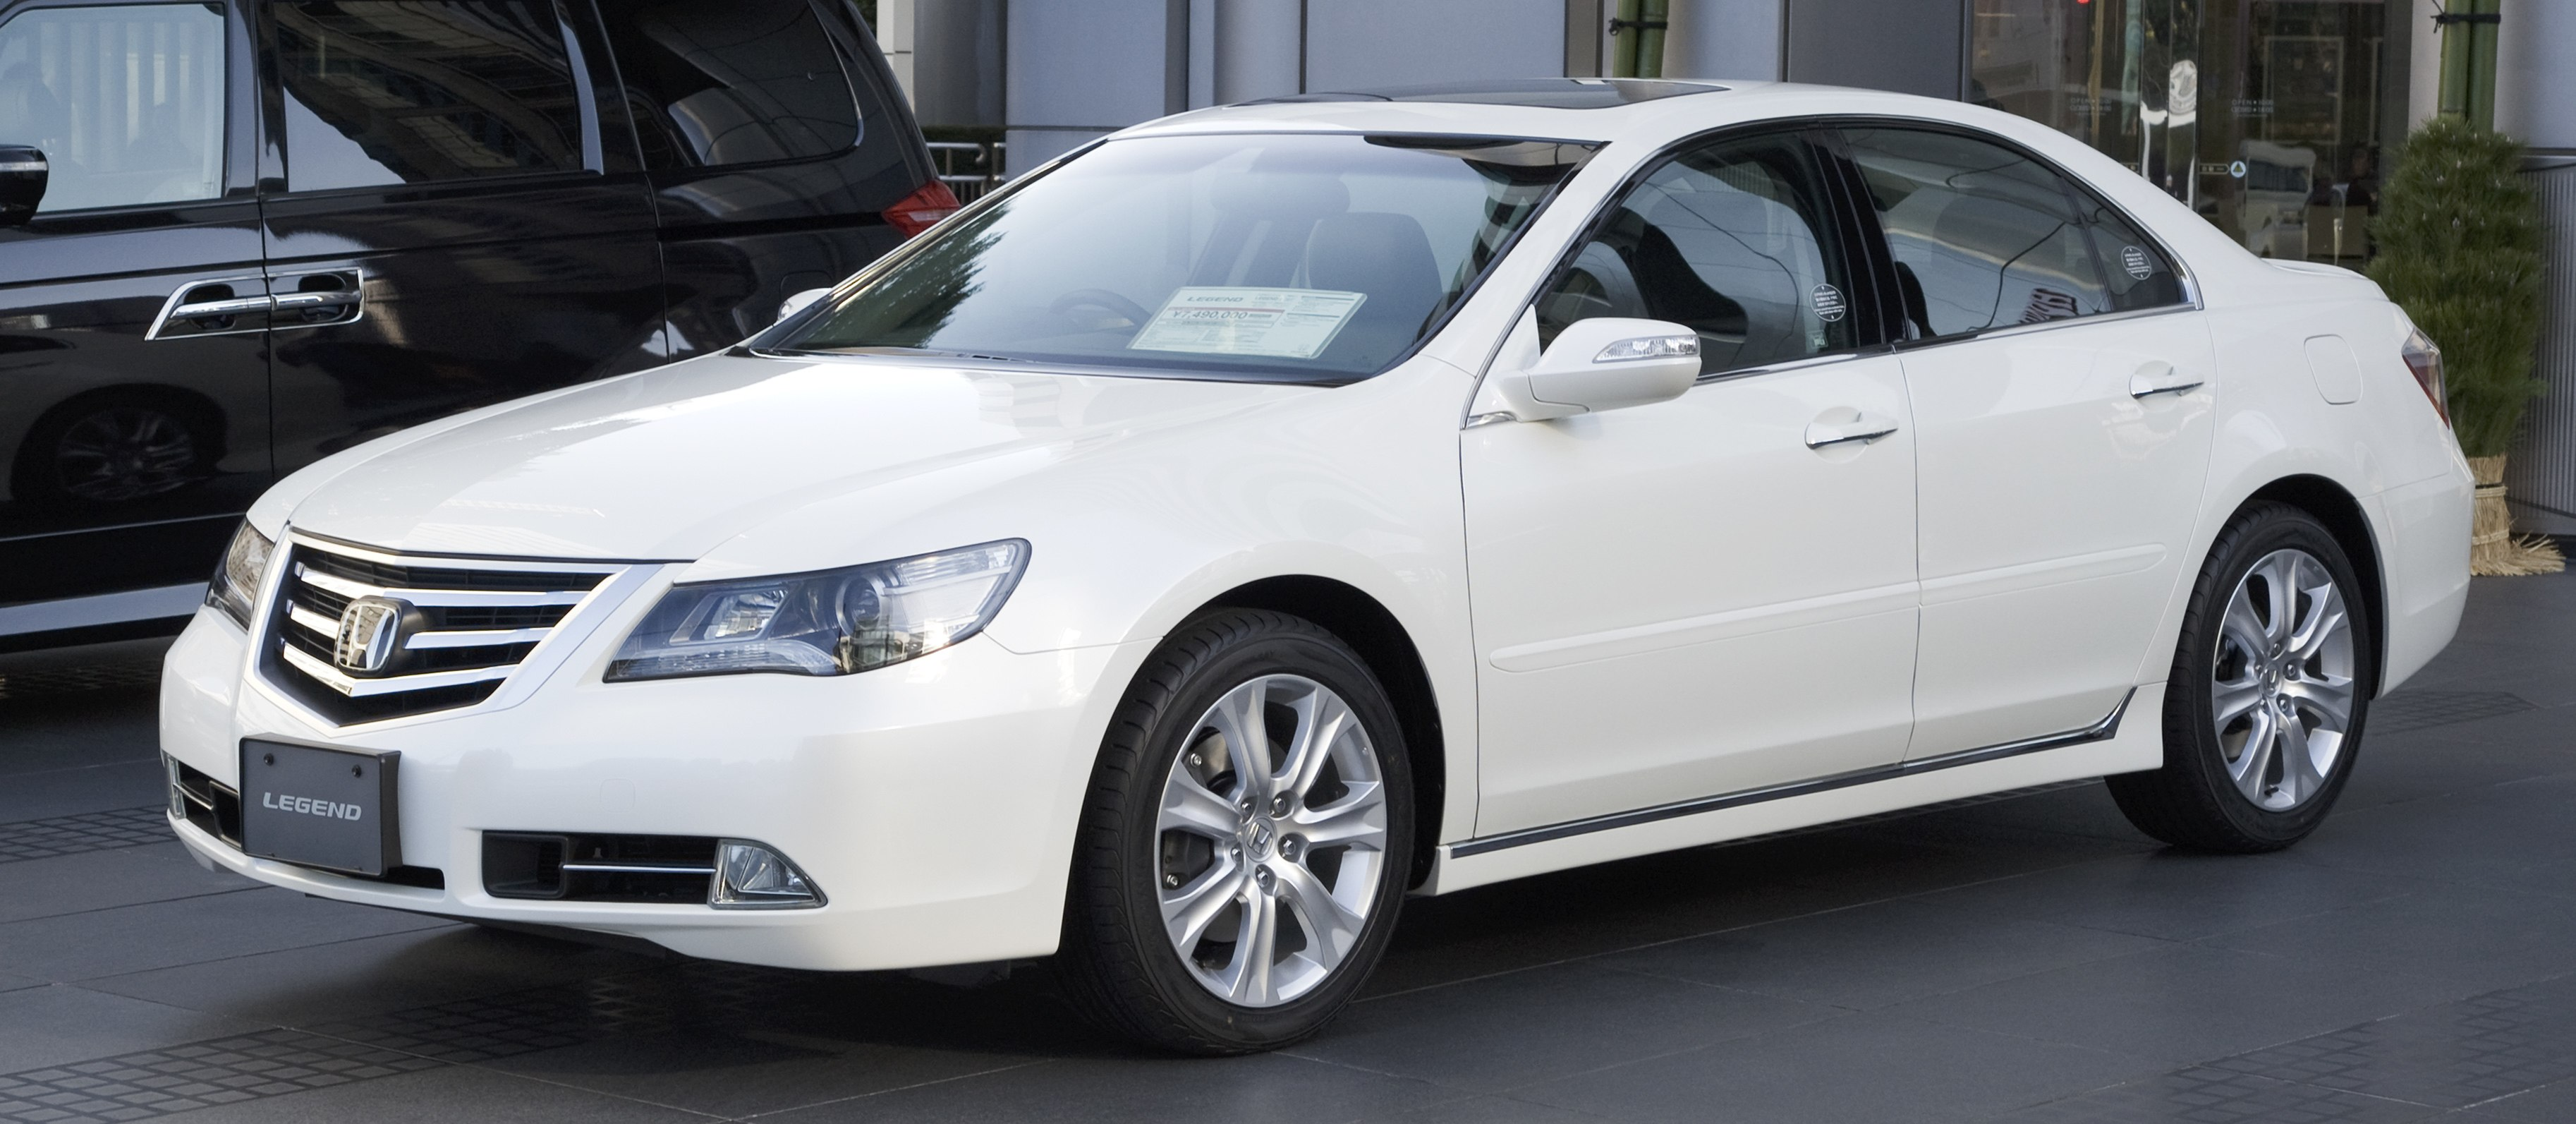 Honda Legend The plete information and online sale with free